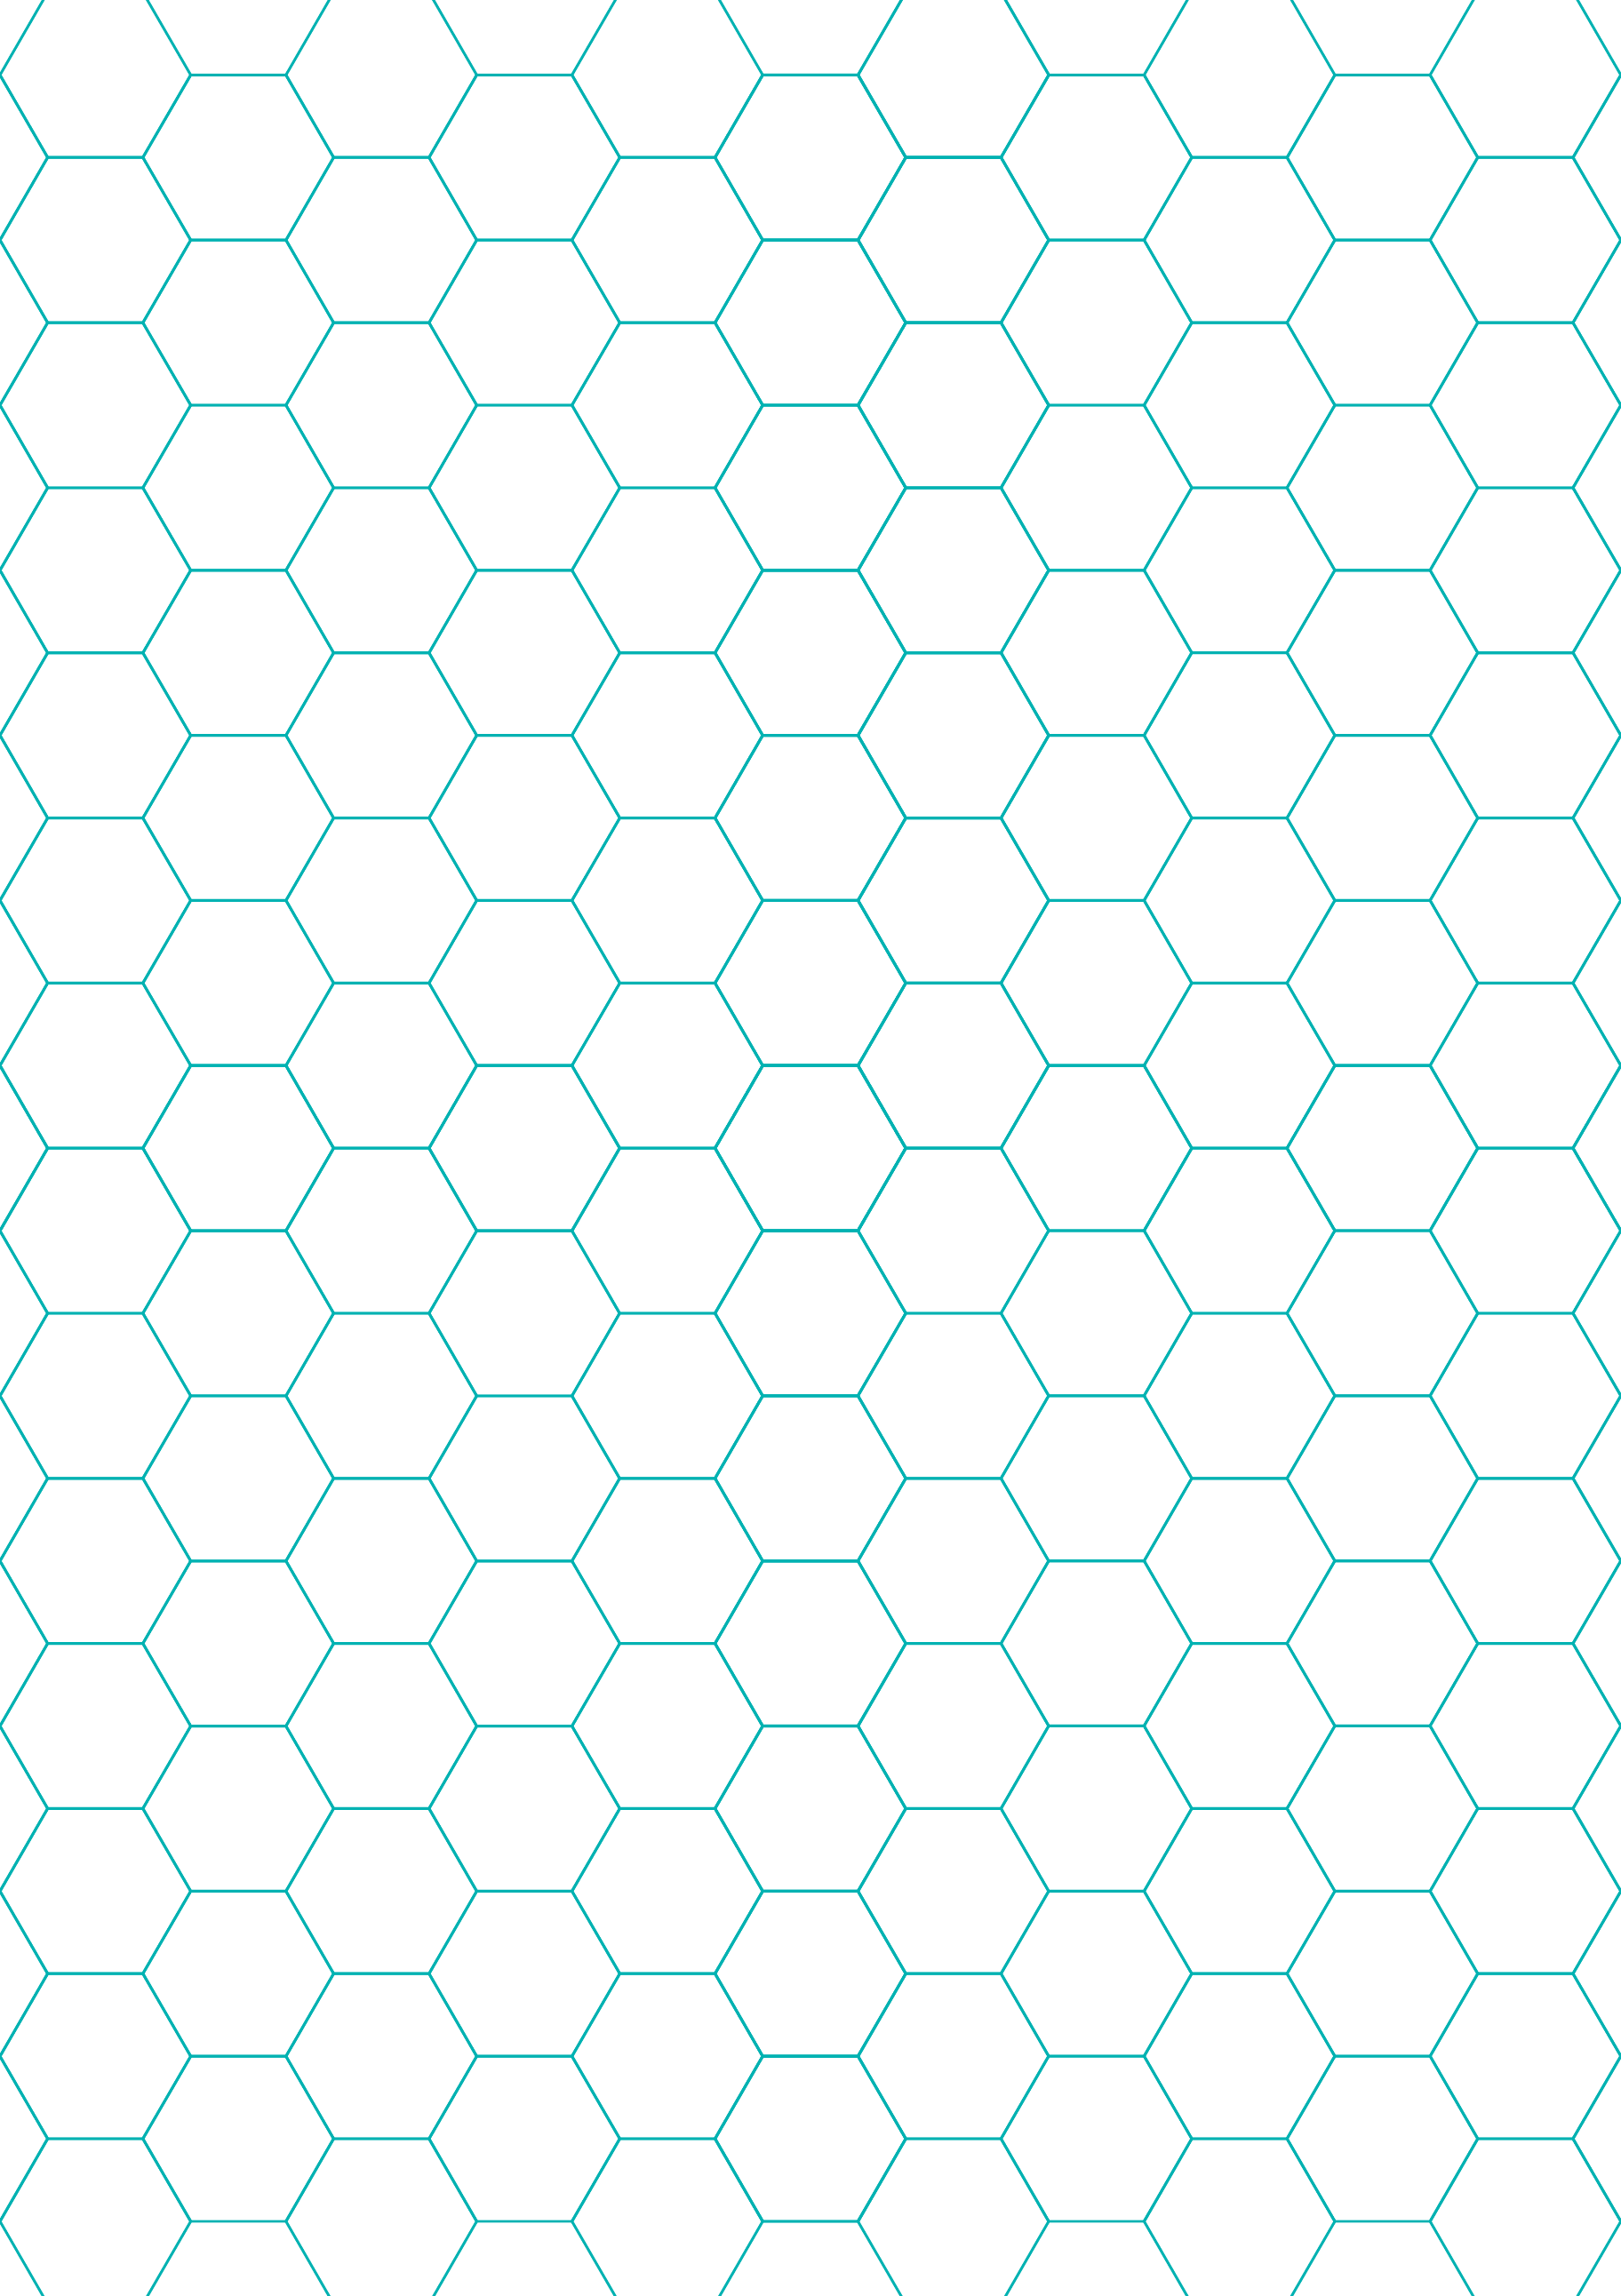 green hexagon and diamond graph paper with 1/4-inch spacing on